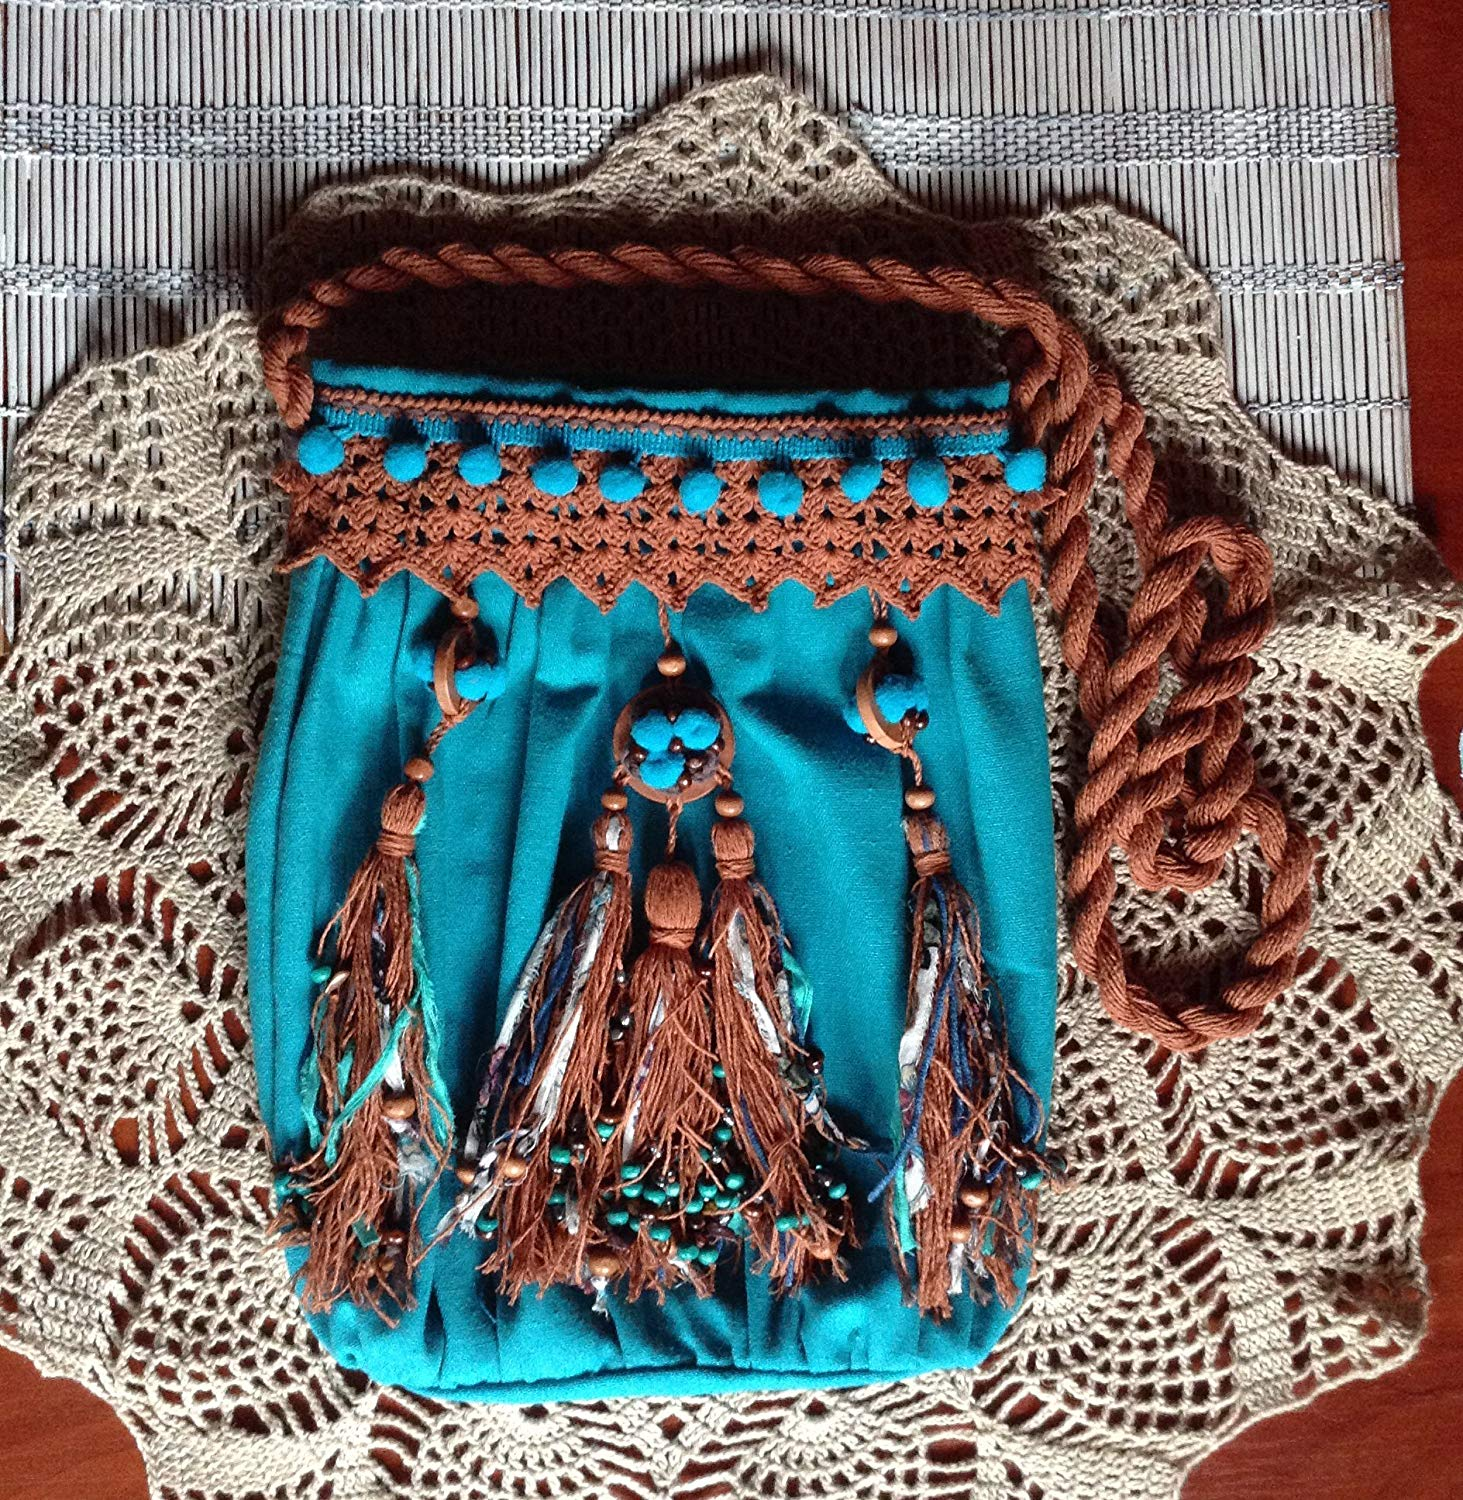 Turquoise Boho Bag, Boho Turquoise Bag, Turquoise Summer Bag, Indian Bag, Bohemian Bags, Boho Crossbody Bag